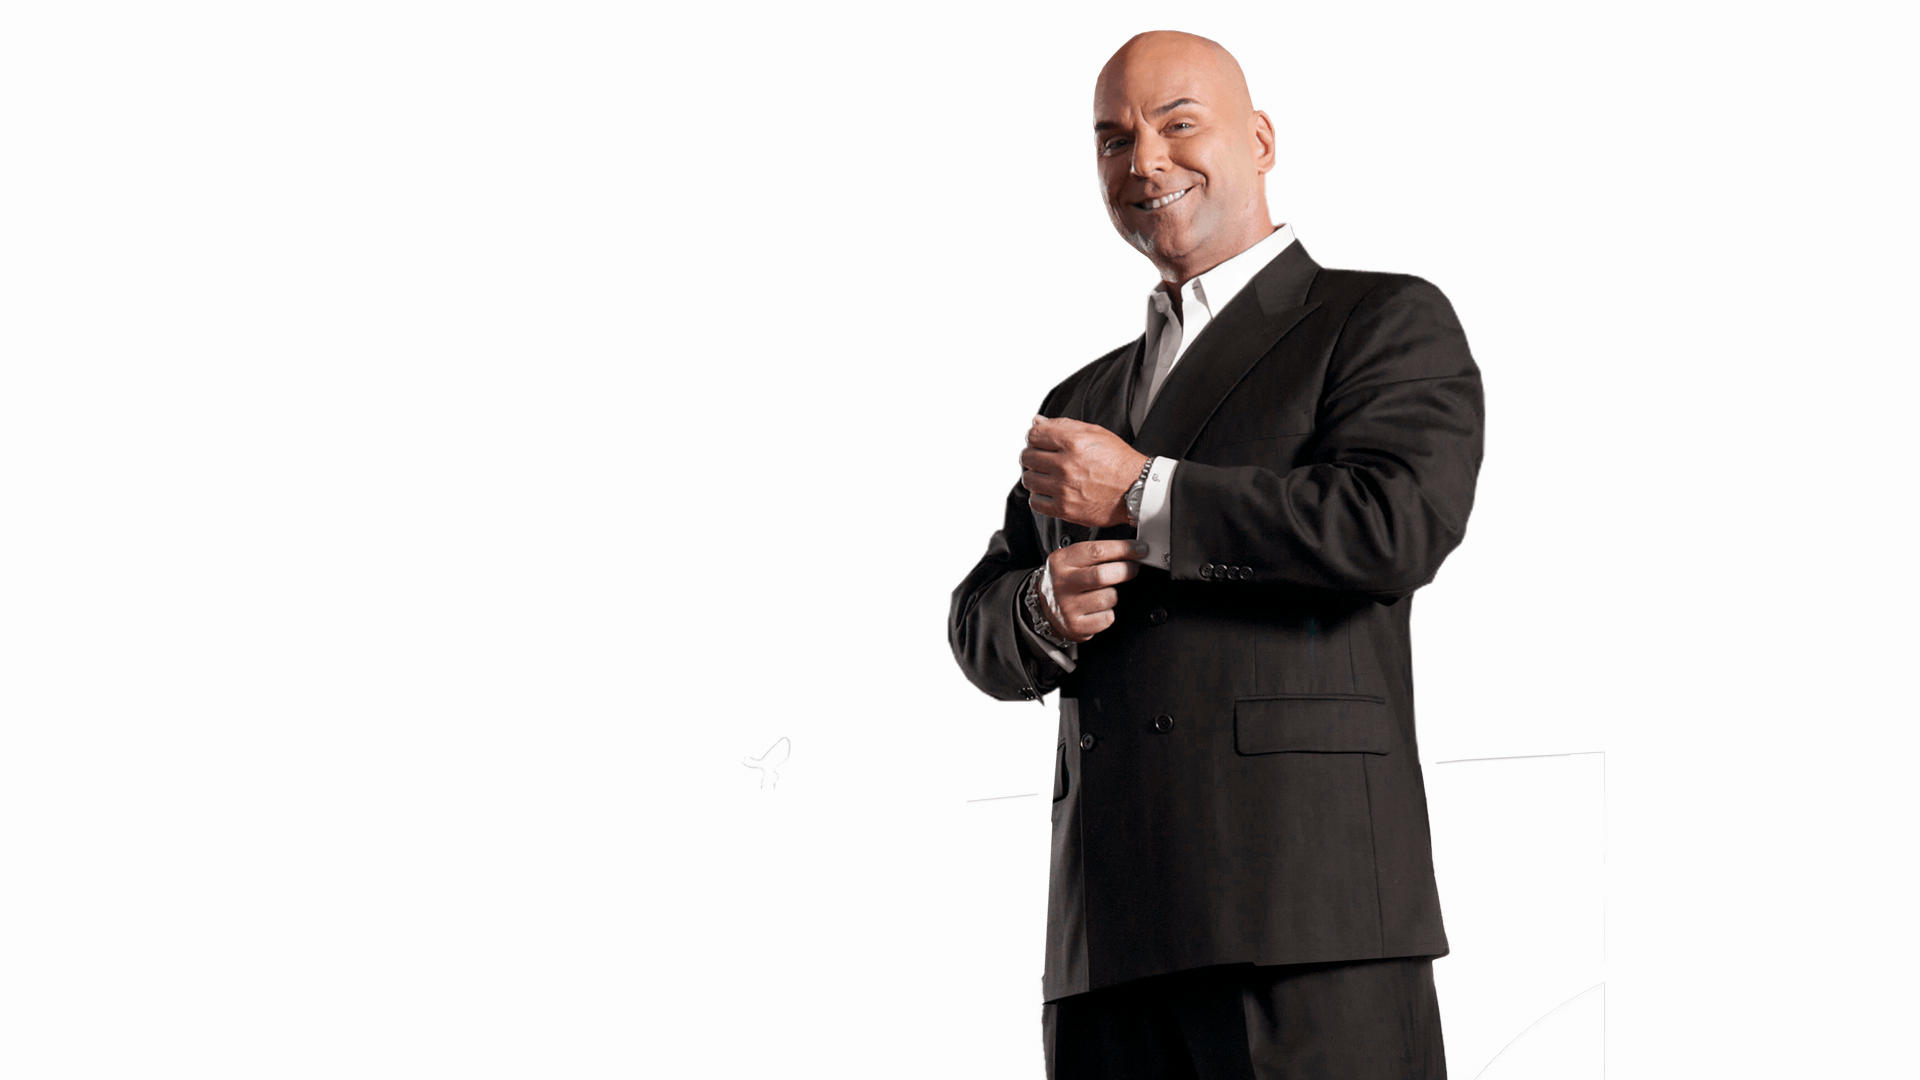 Exclusive Interview with The Millionaire Maker, Marshall Sylver